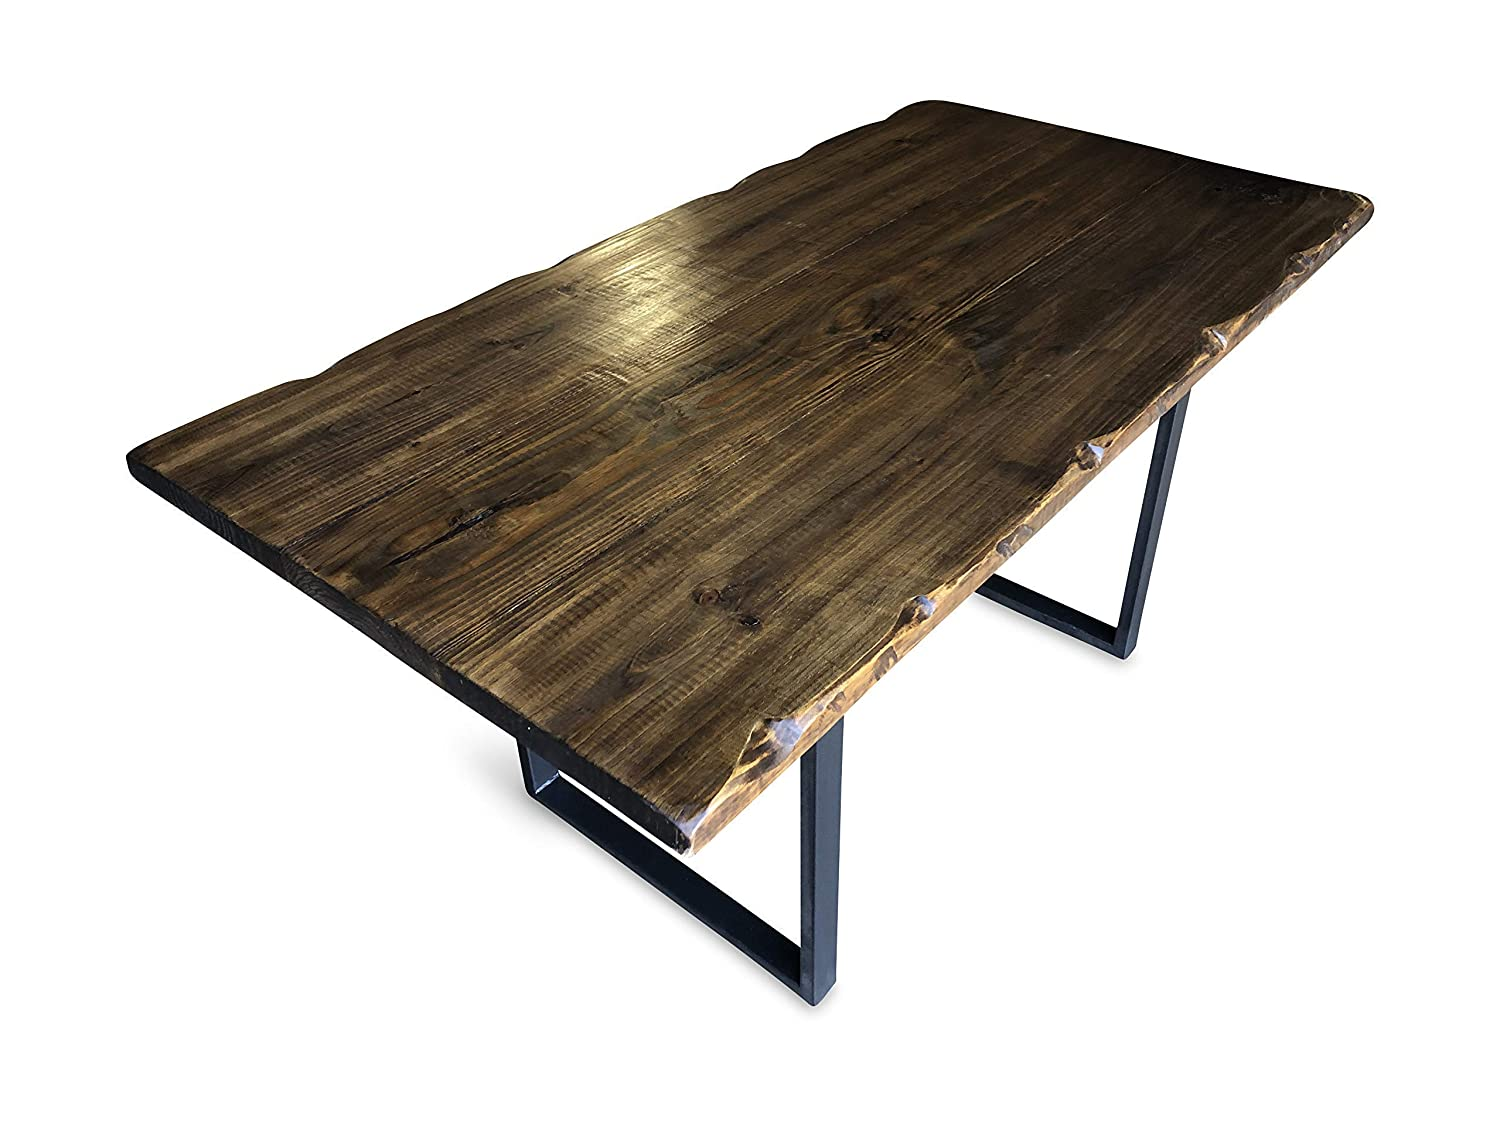 UMBUZ Reclaimed Wood Dining Table